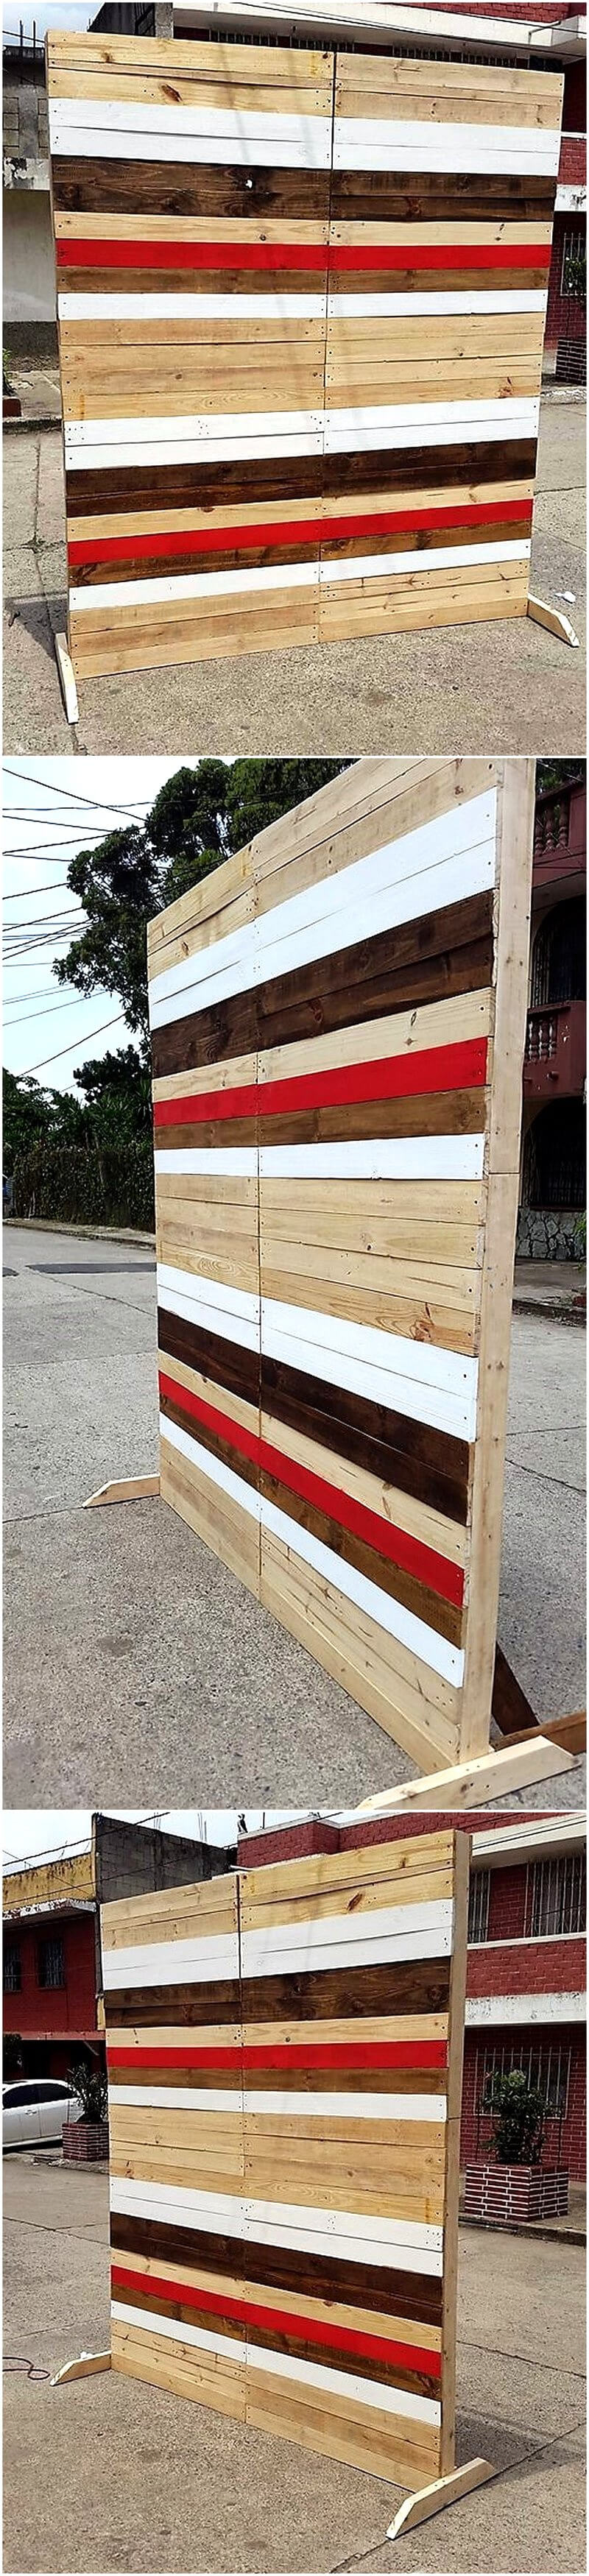 pallets space divider project